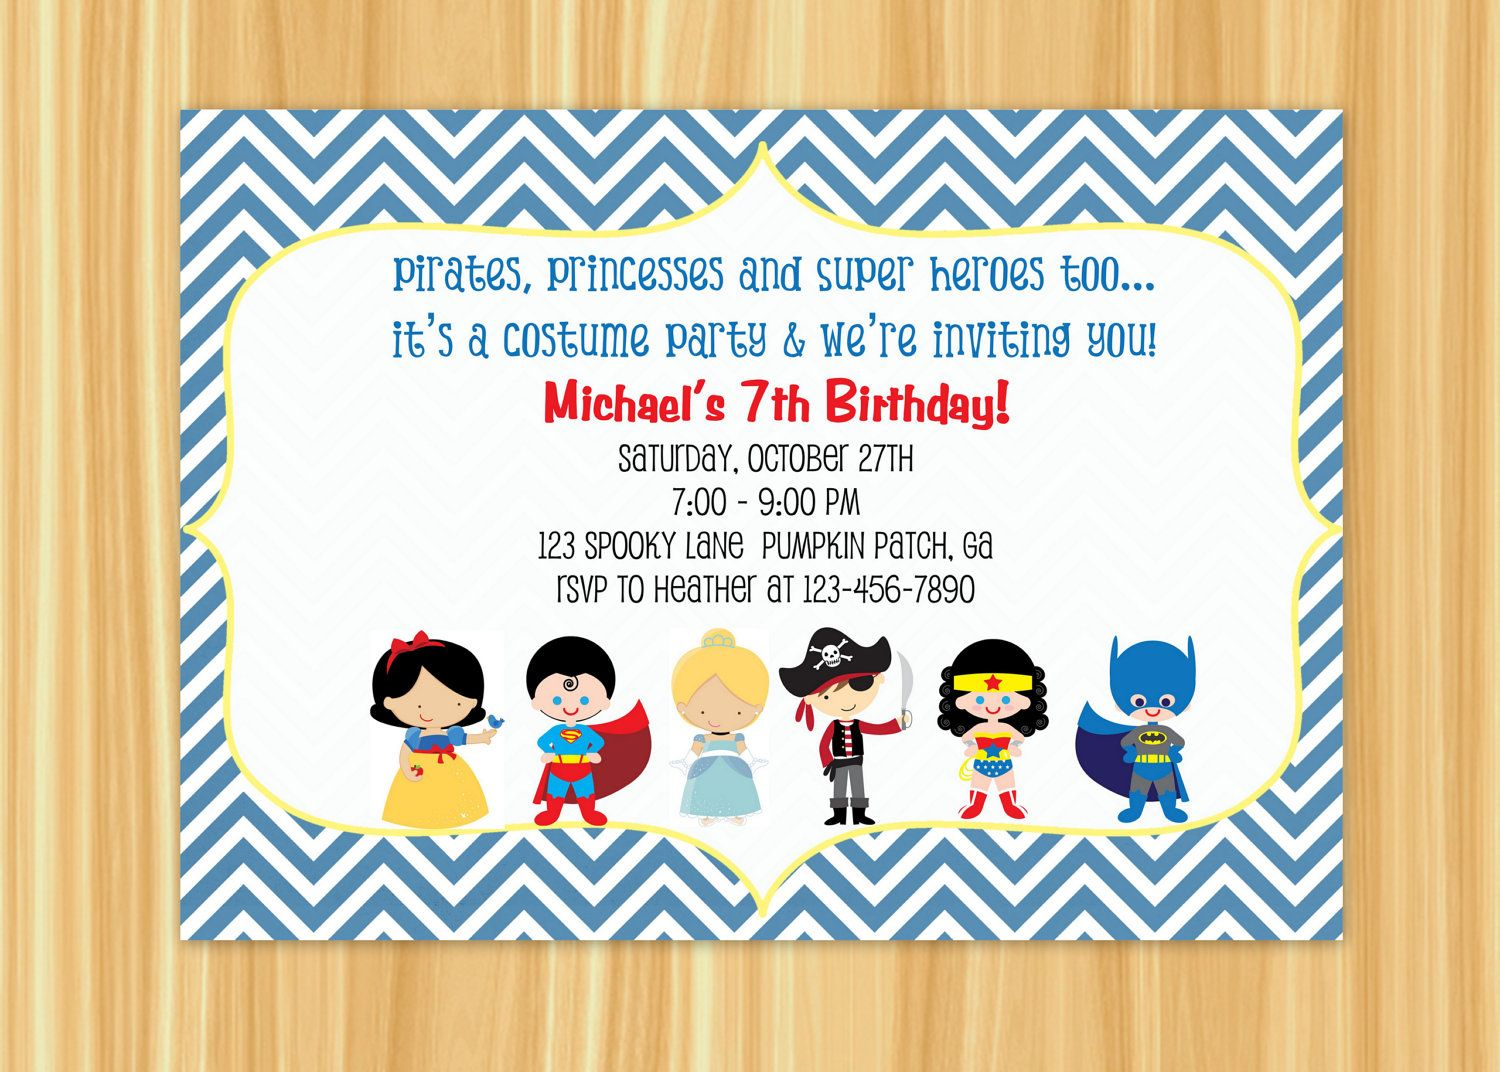 Custom Printable Kids Costume Party Birthday Invitation 1000 – Printable Kids Birthday Party Invitations